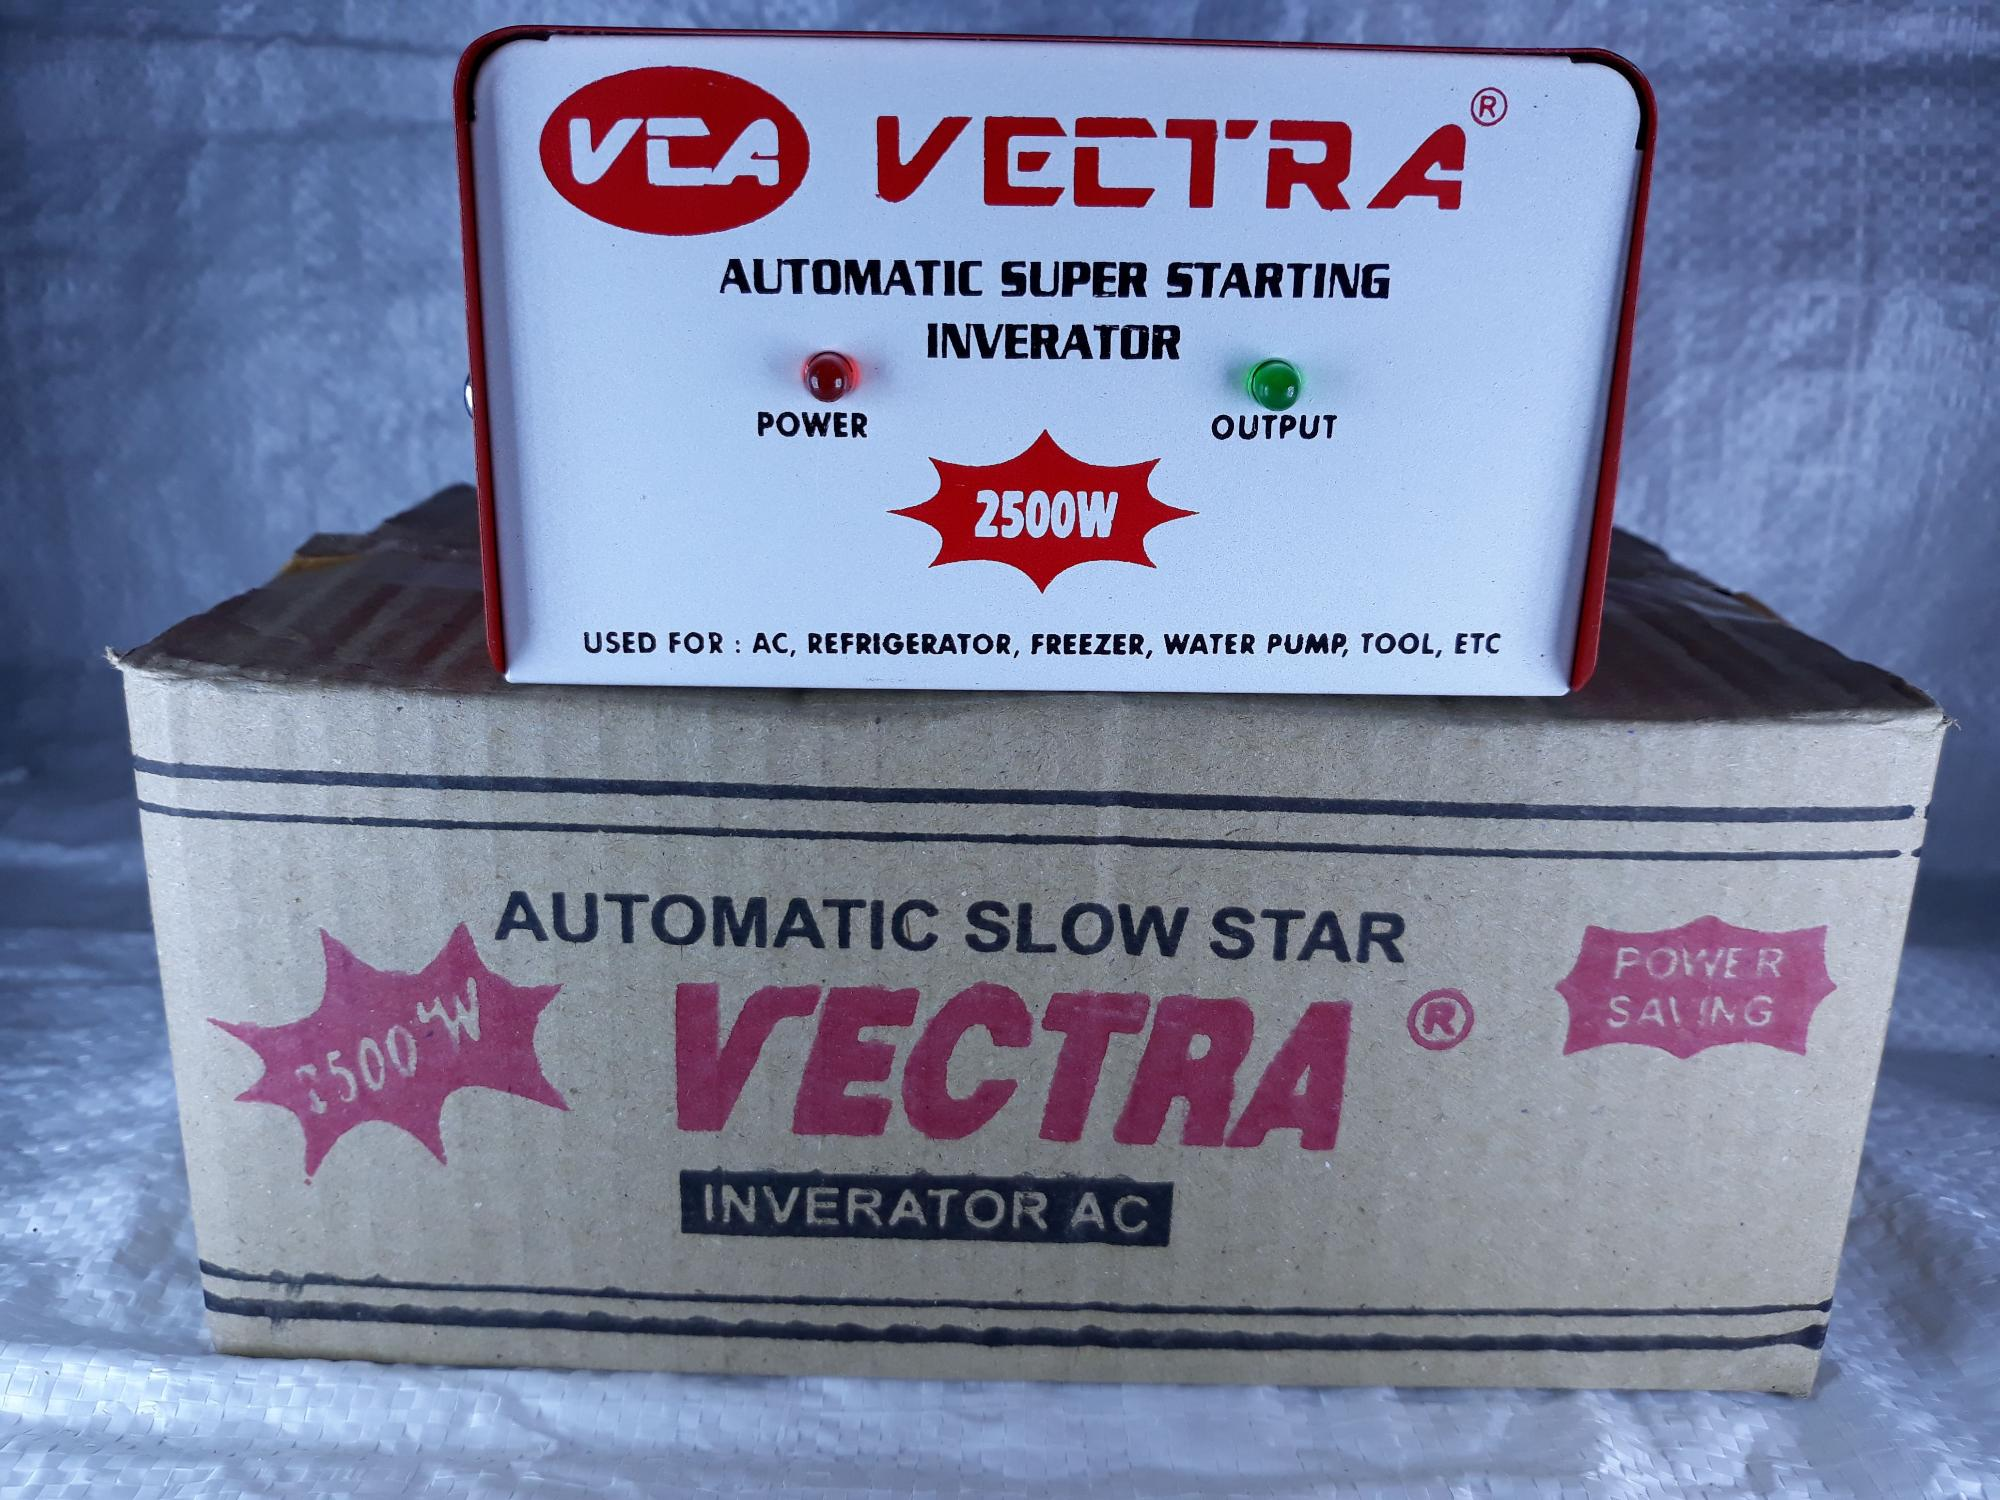 ... Inverator Slow Start / Auto Start Vectra 2500 watt - 3